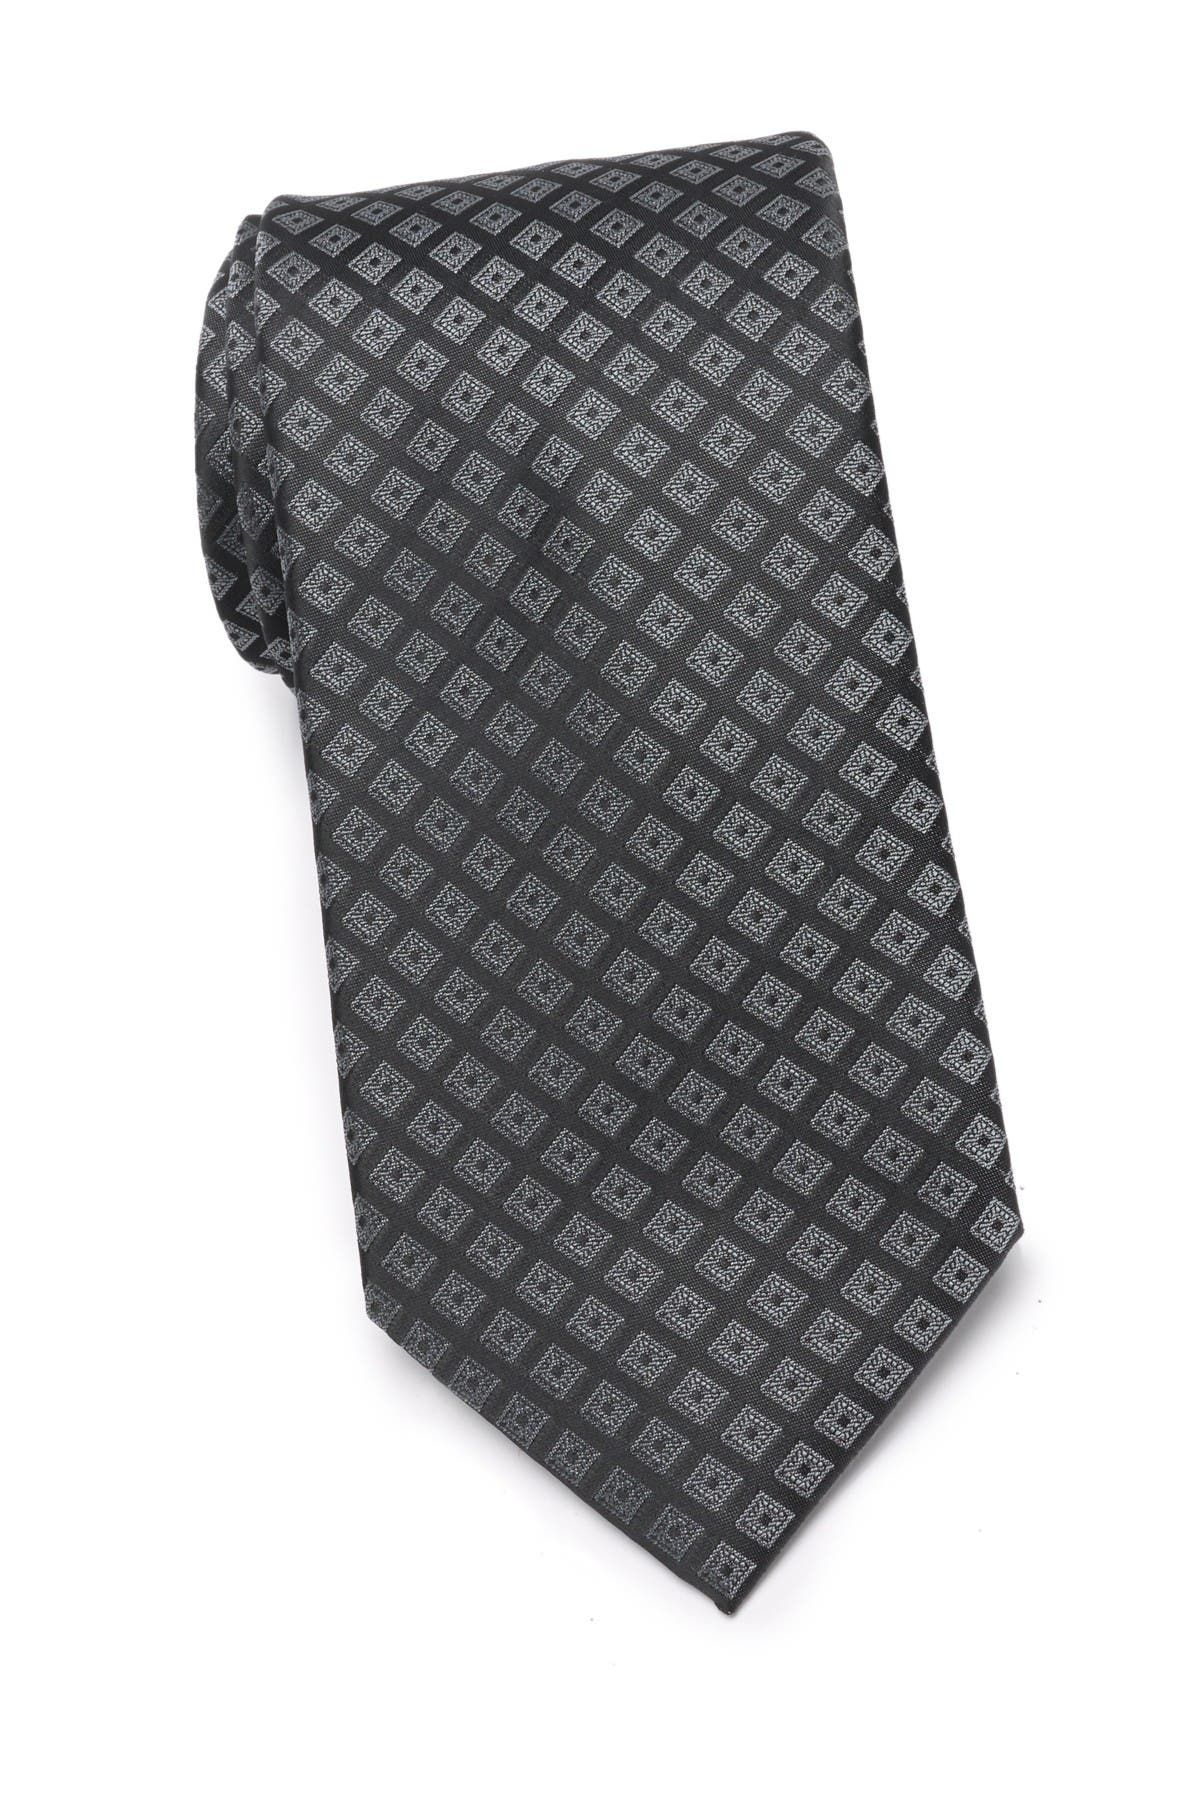 Image of Kenneth Cole Reaction Diamond Pattern Tie